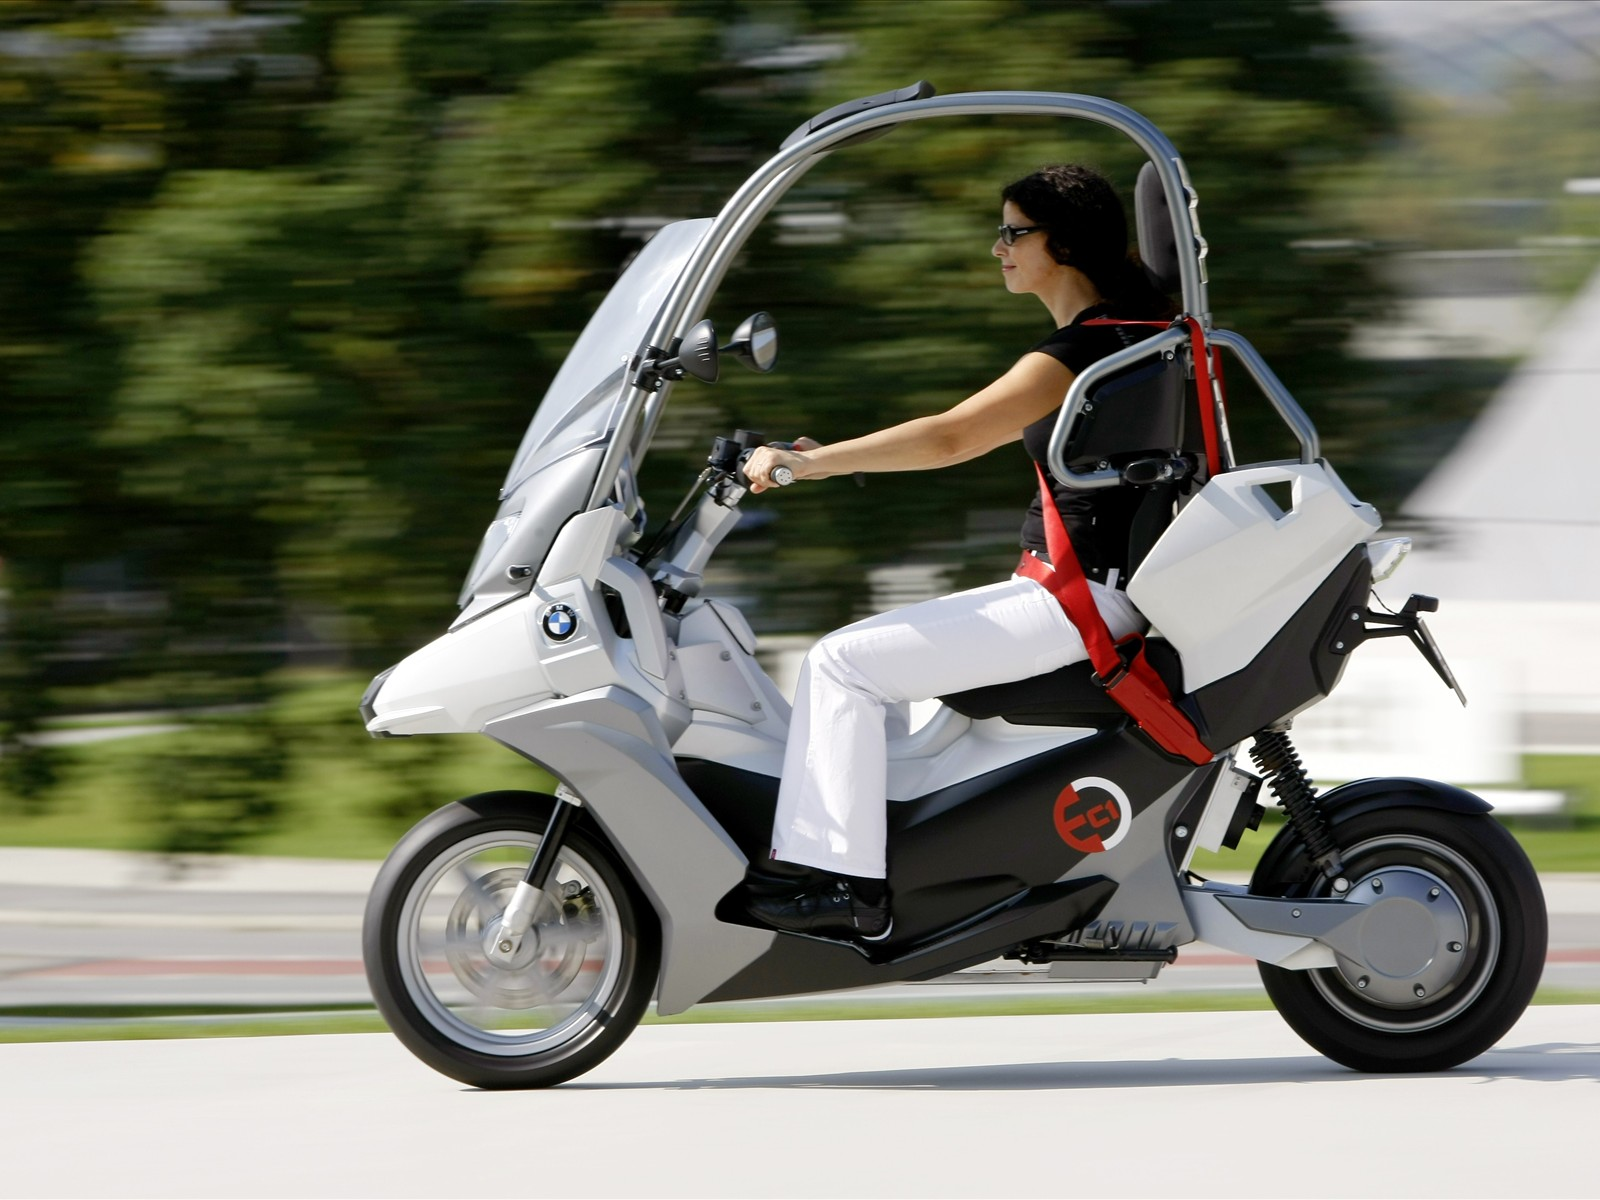 Bmw Automotive C1 E Concept Scooter Pictures Accident